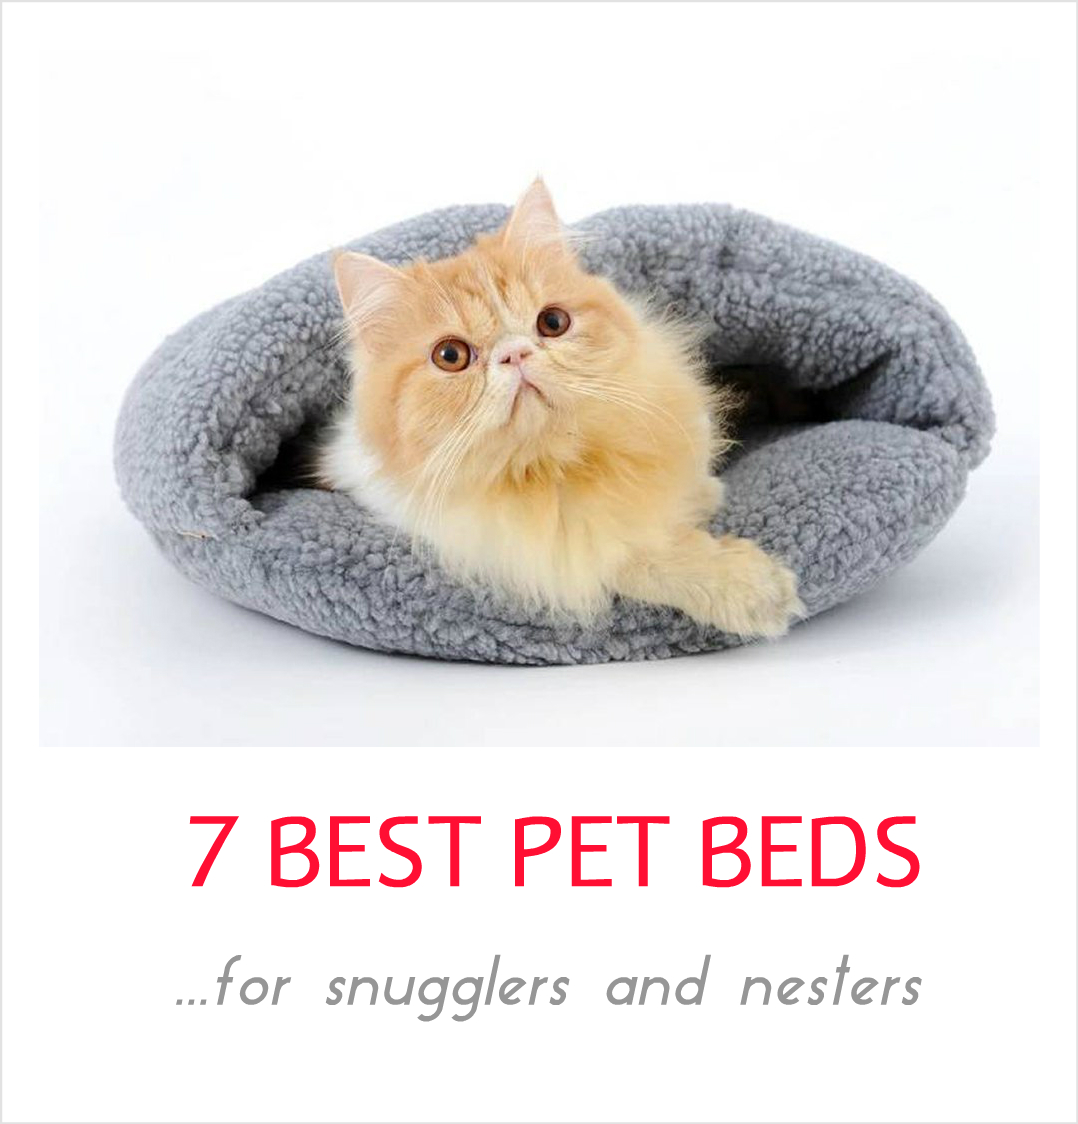 b687a2183d38 7 Best Cozy Pet Beds For Snugglers